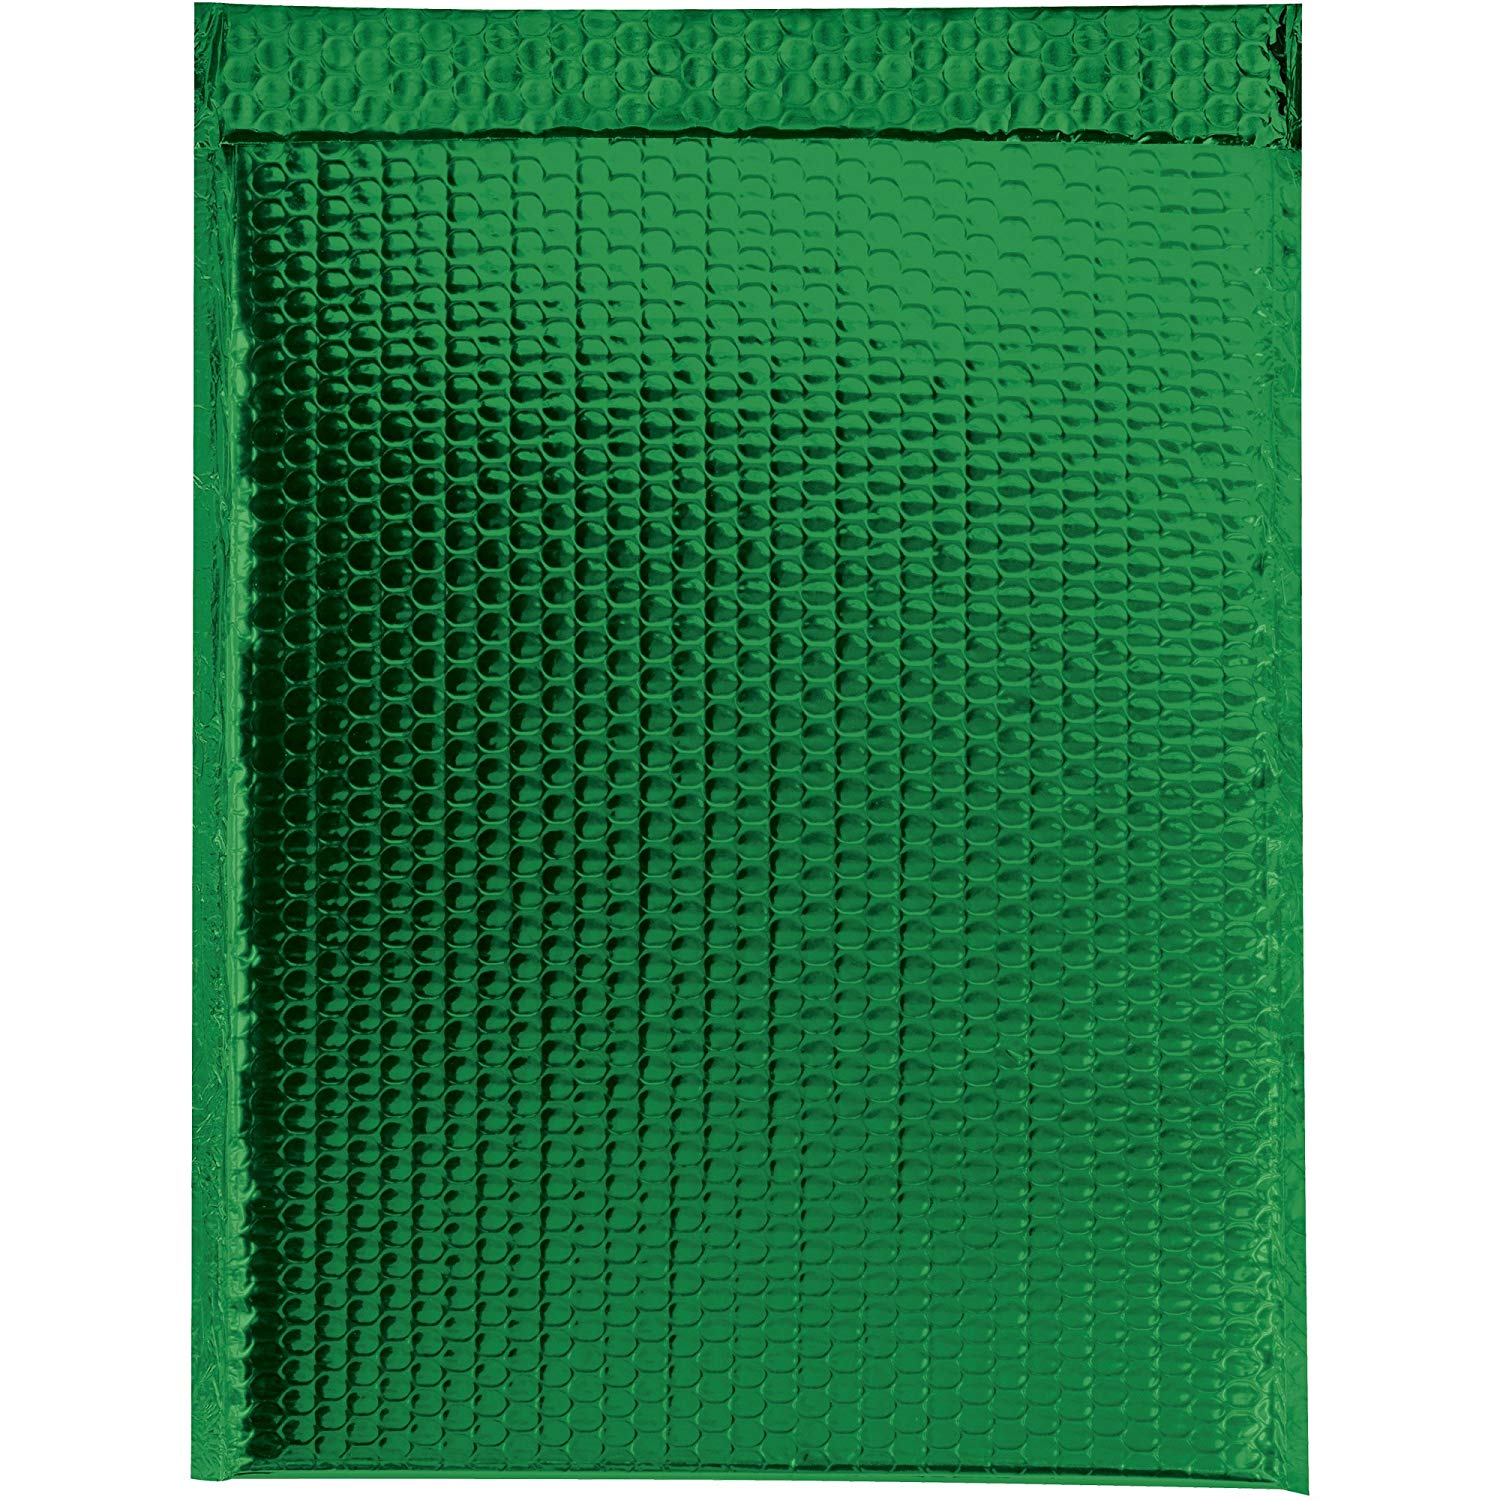 "Boxes Fast BFGBM1317G Glamour Bubble Mailers, 13"" x 17 1/2"", Green (Pack of 100)"